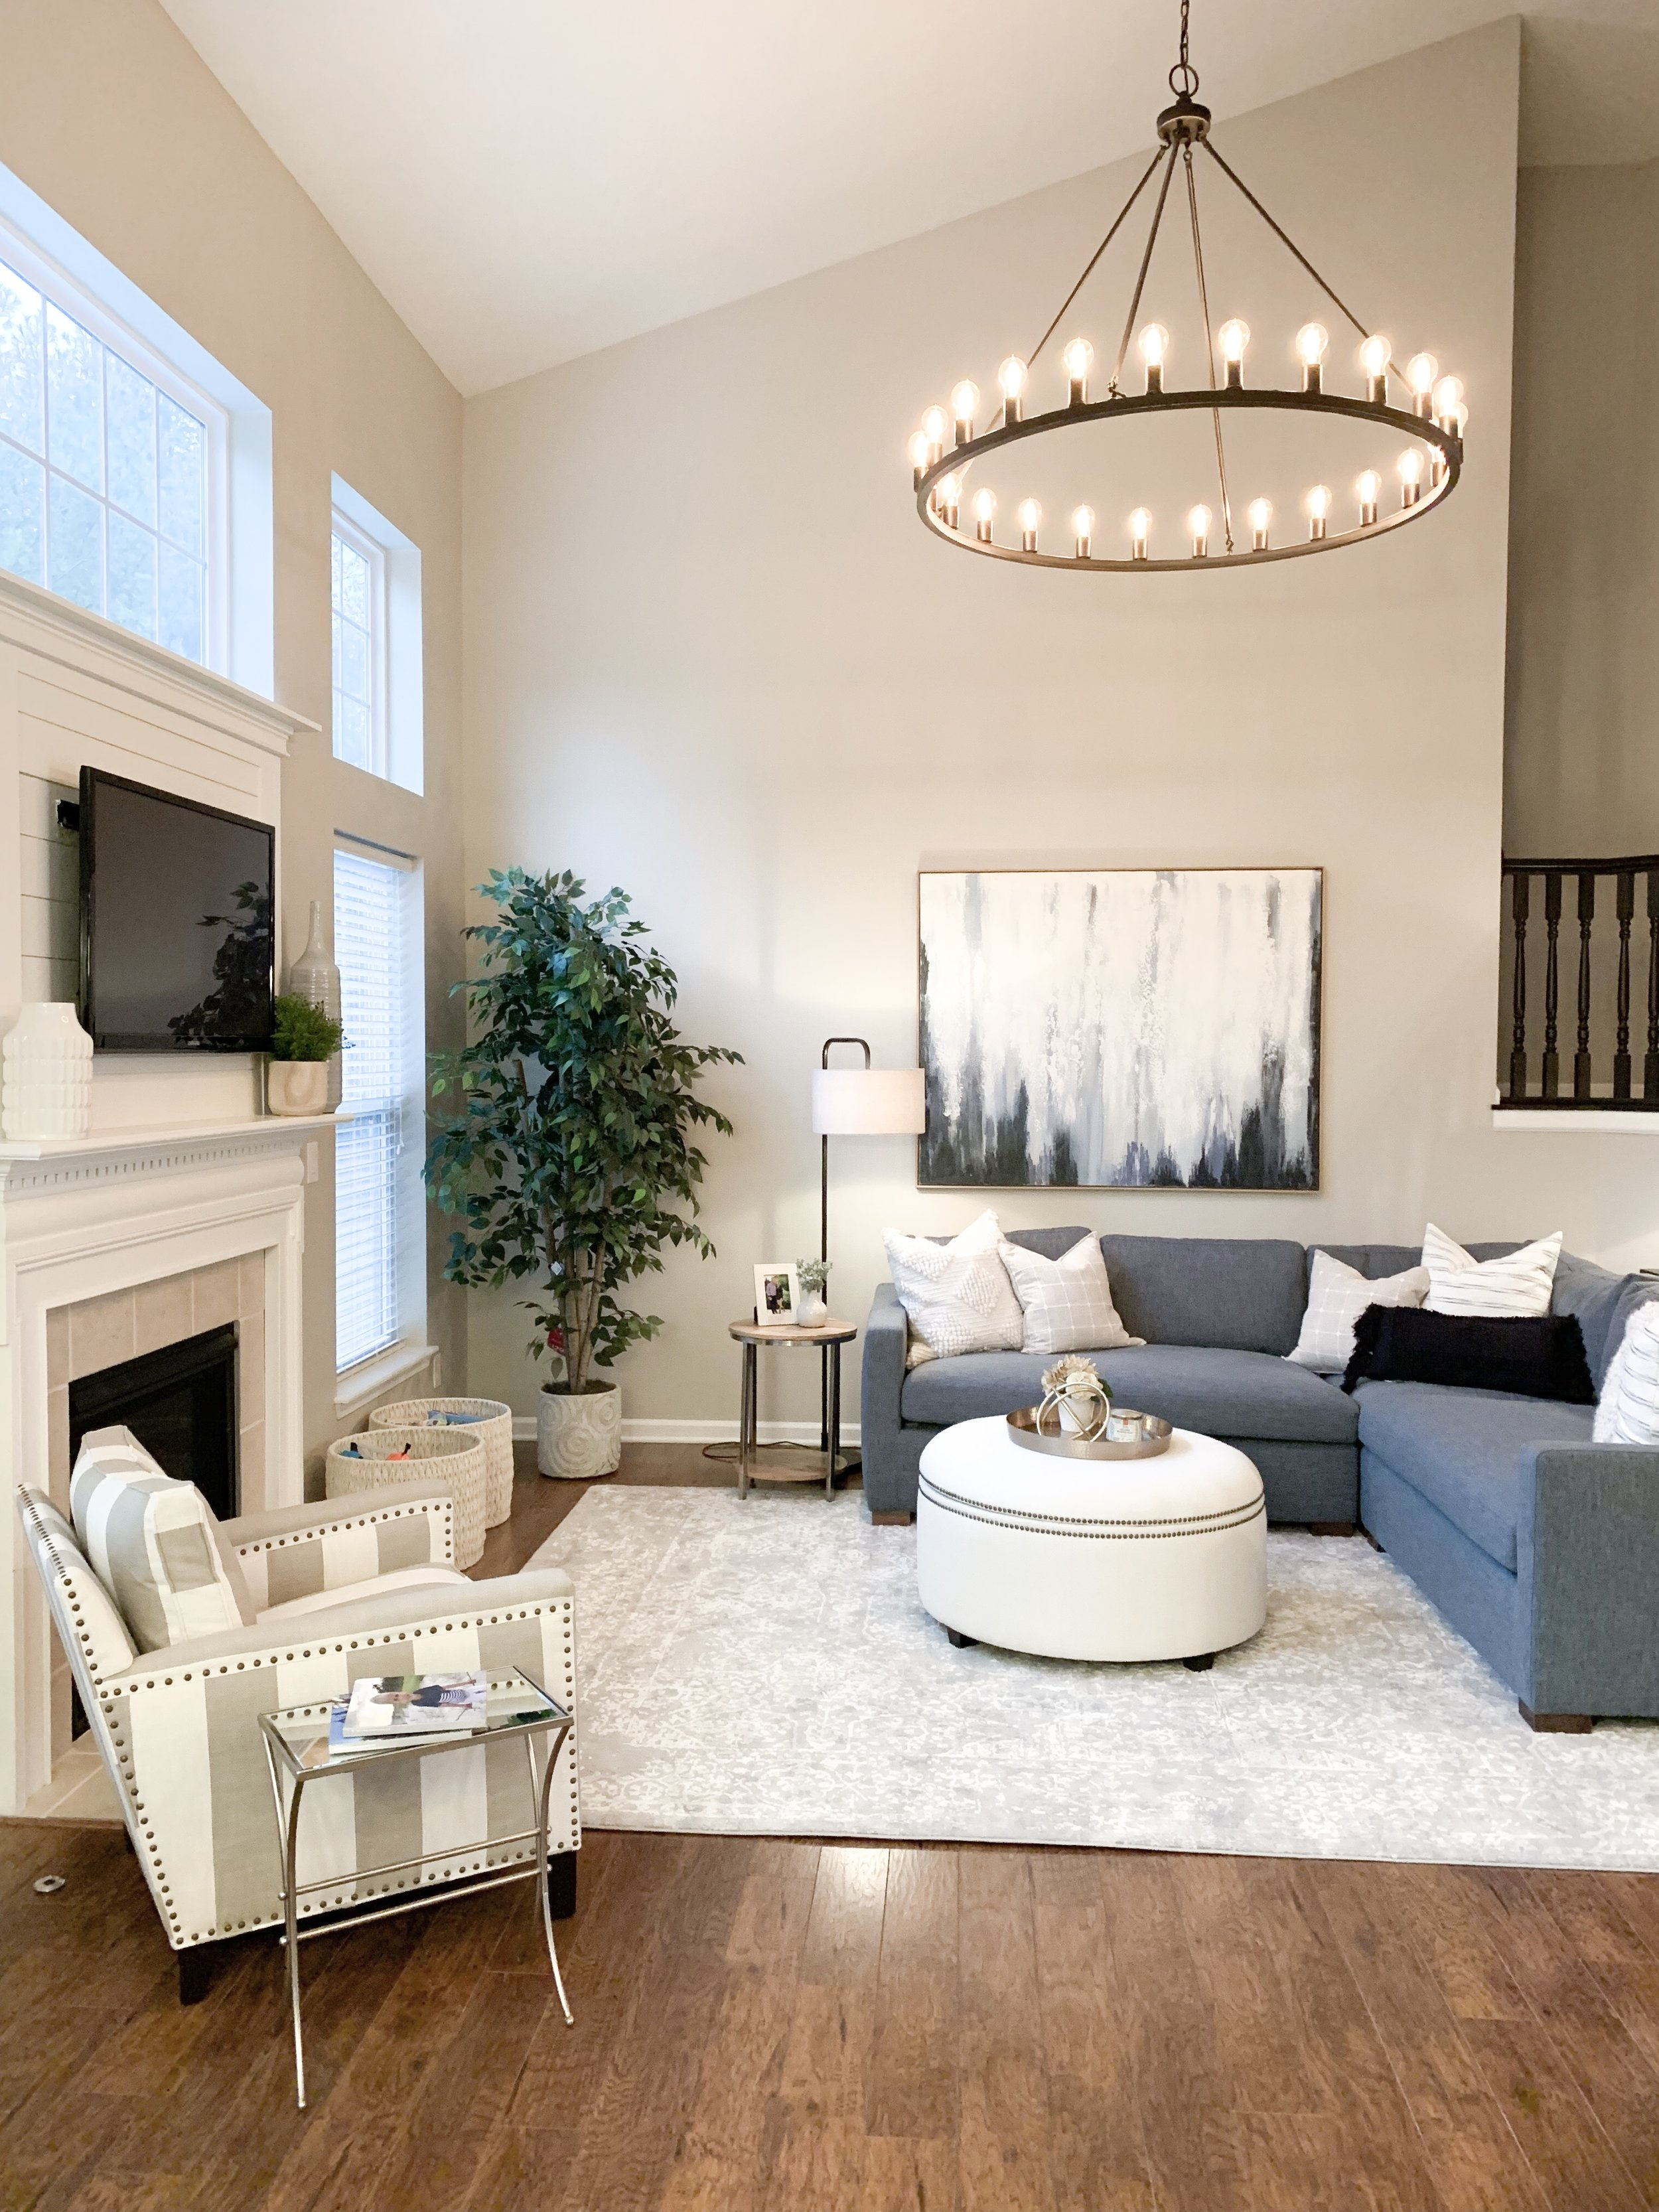 large round chandelier navy and white living room